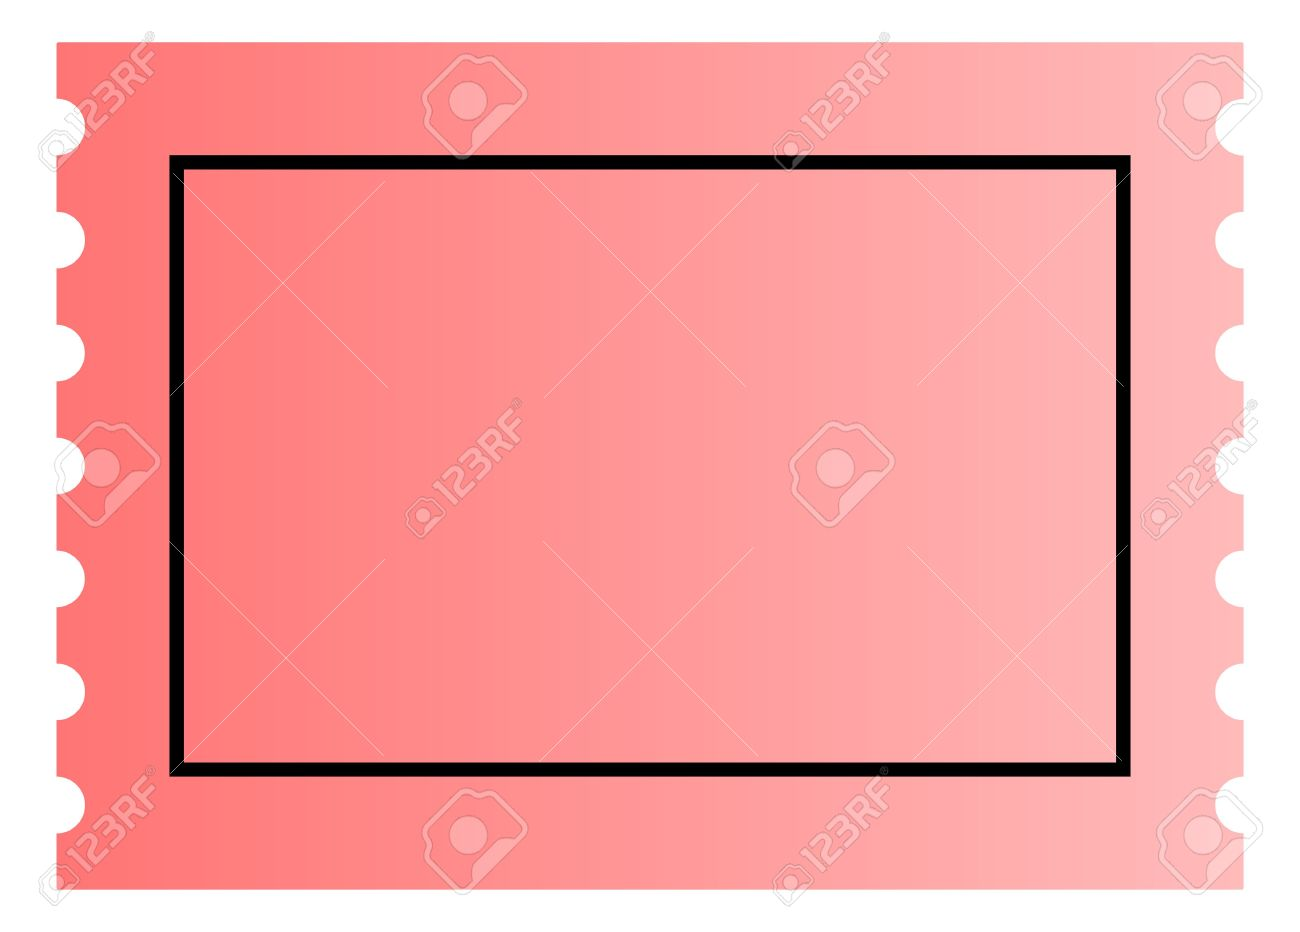 Blank Pink Ticket Template With Copy Space Isolated On White – Blank Ticket